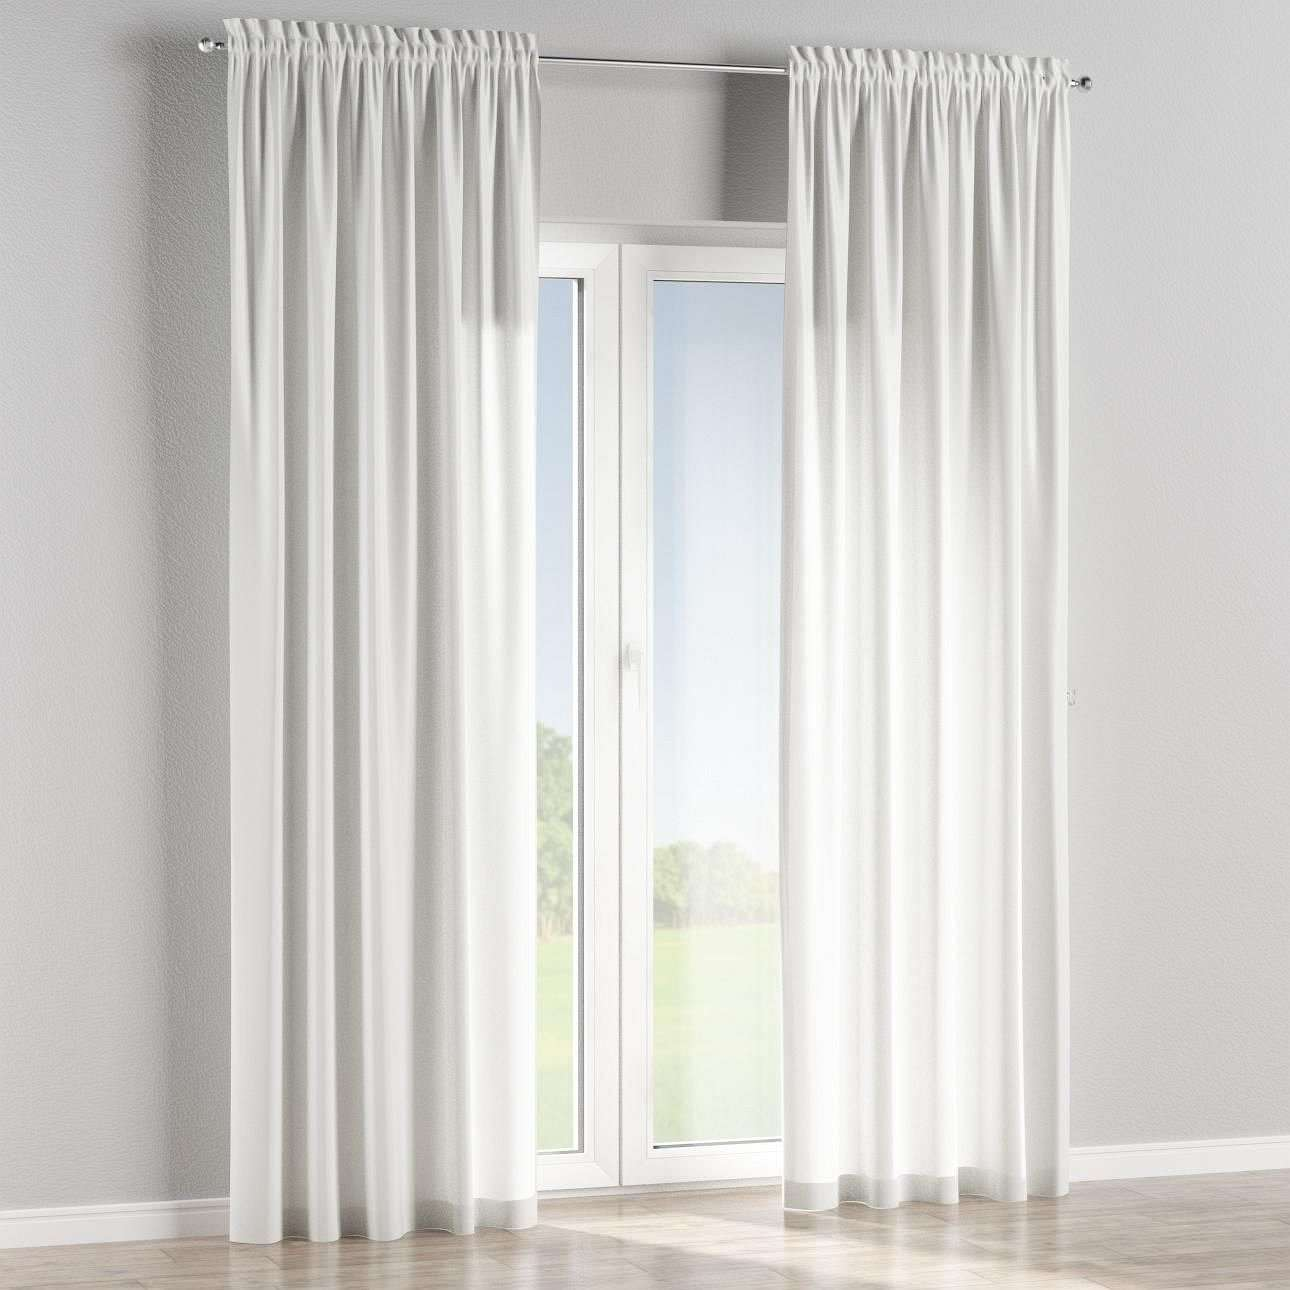 Slot and frill lined curtains in collection Flowers, fabric: 311-09